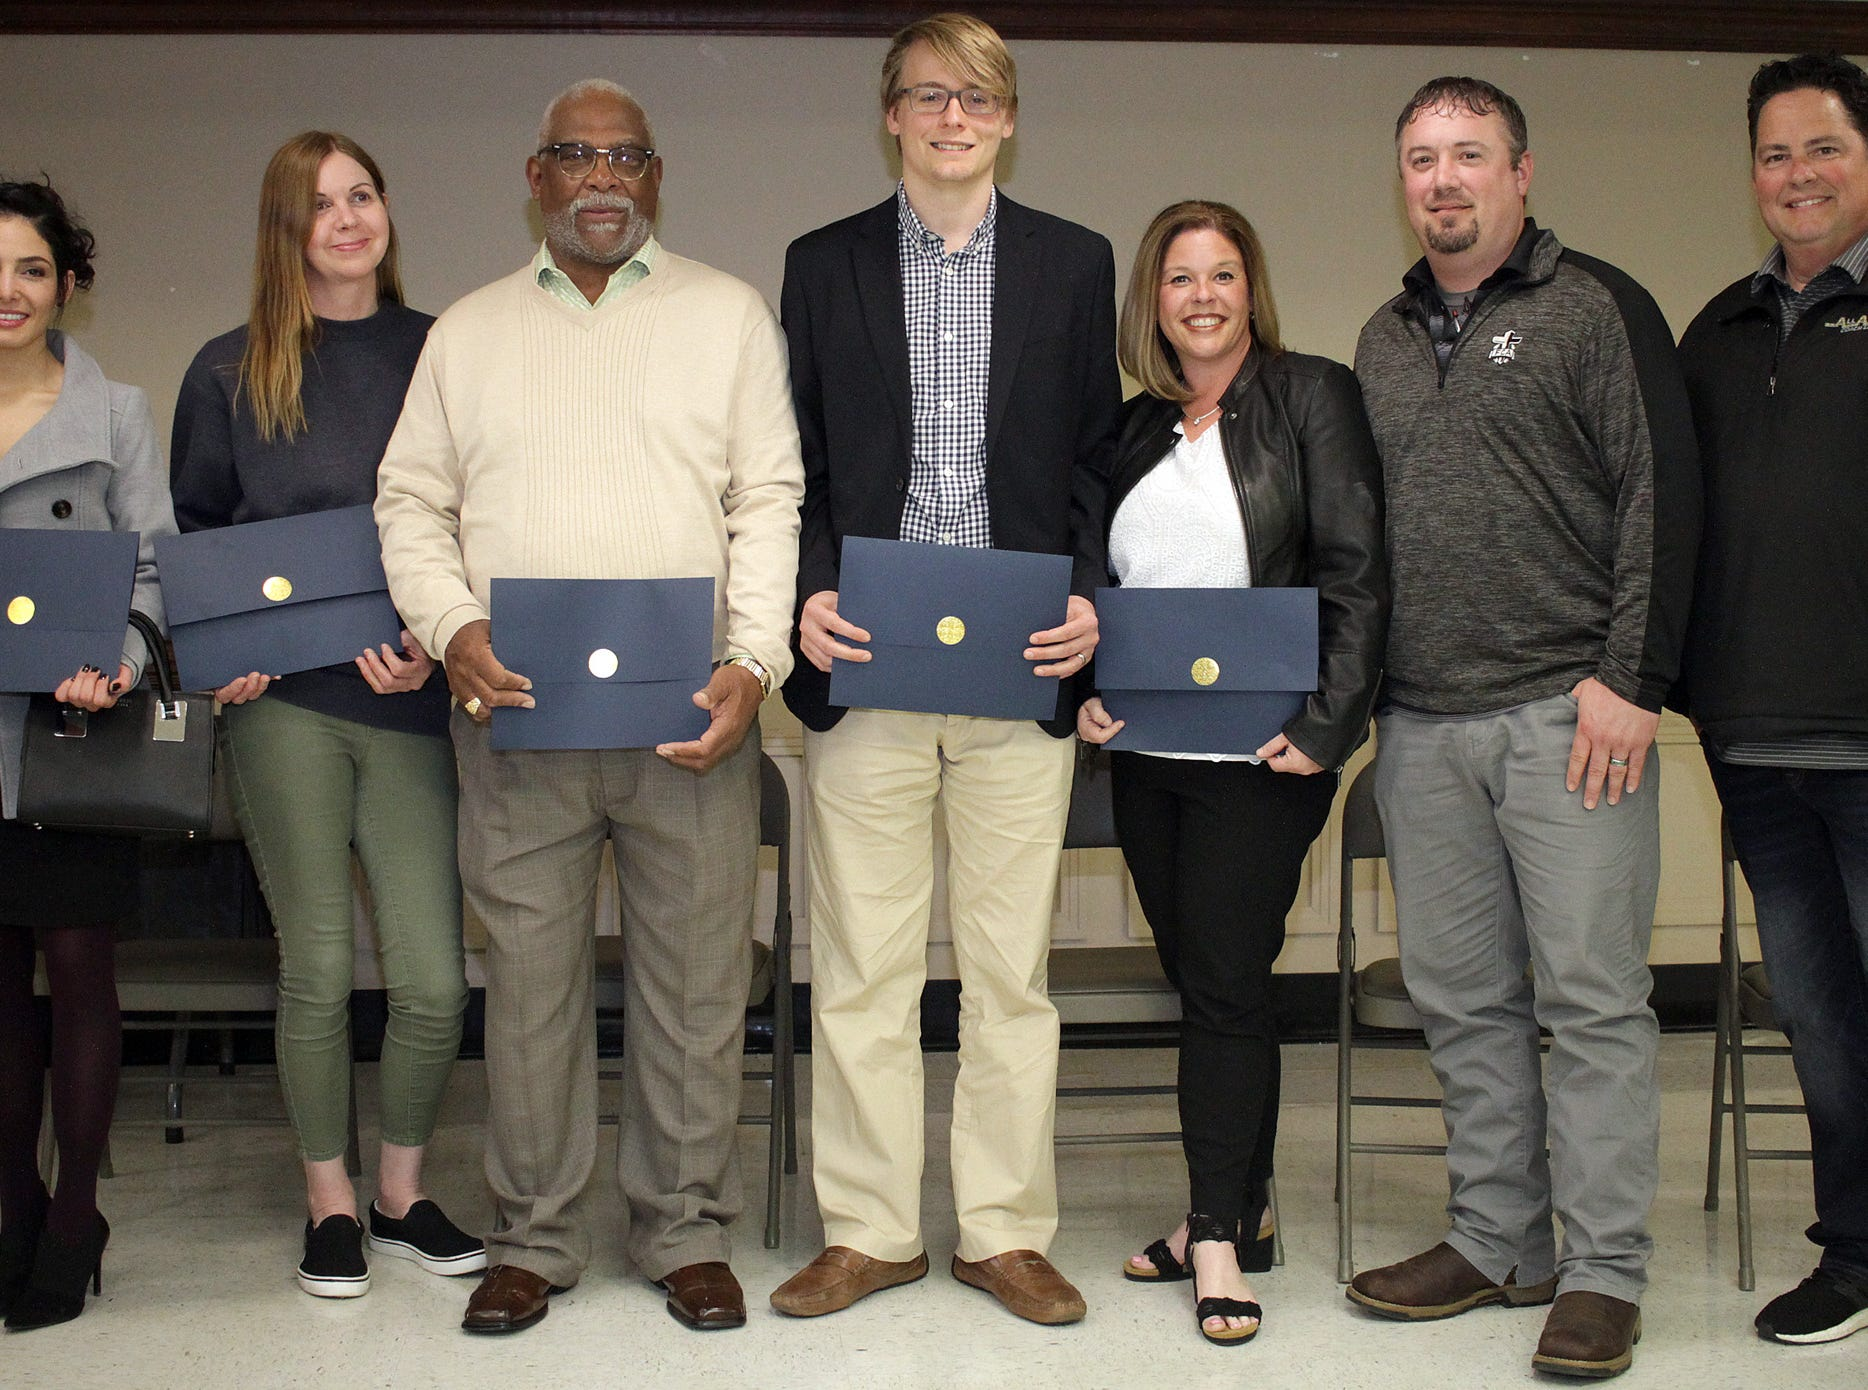 Receiving Citizen Commendations at the Gallatin Police Dept. Awards Ceremony for 2018 Achievements are:  L-R Lisa Abdulameer, Debra Alvarado, John Flippon Jr., Travis Hoover, Katie Smith, Brian Hudson and Eric Blankenship on Thursday, March 21. 2019.